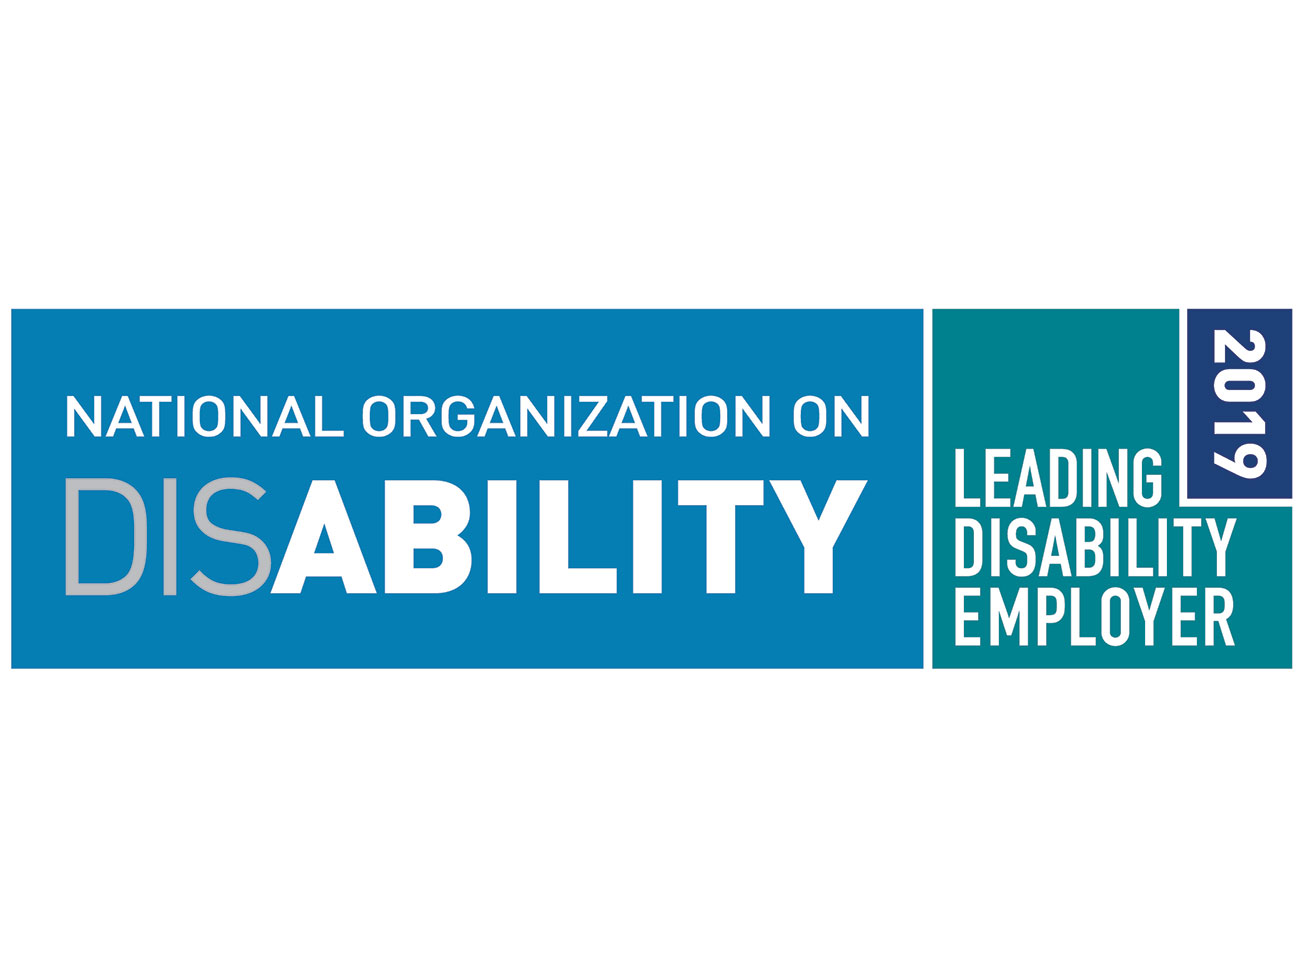 National Organization on Disability Leading Disability Employer 2019 logo